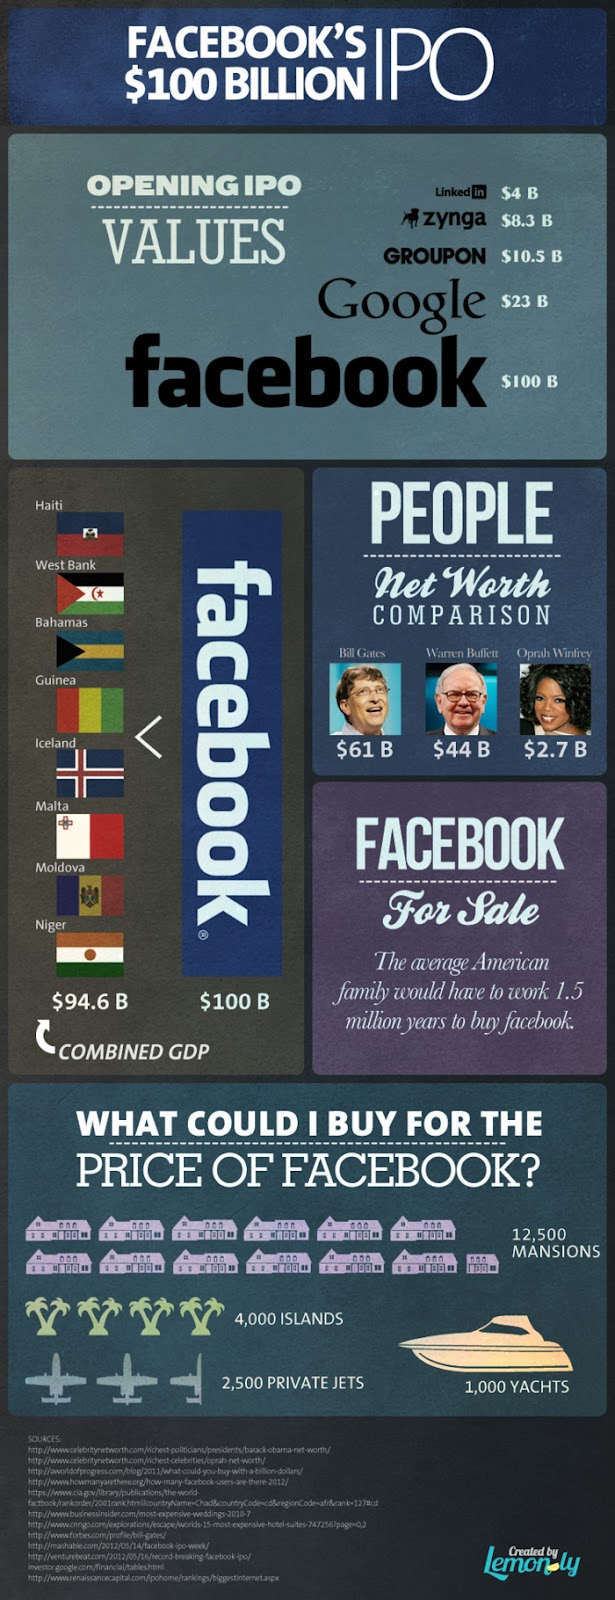 Facebook's IPO $100 Billion